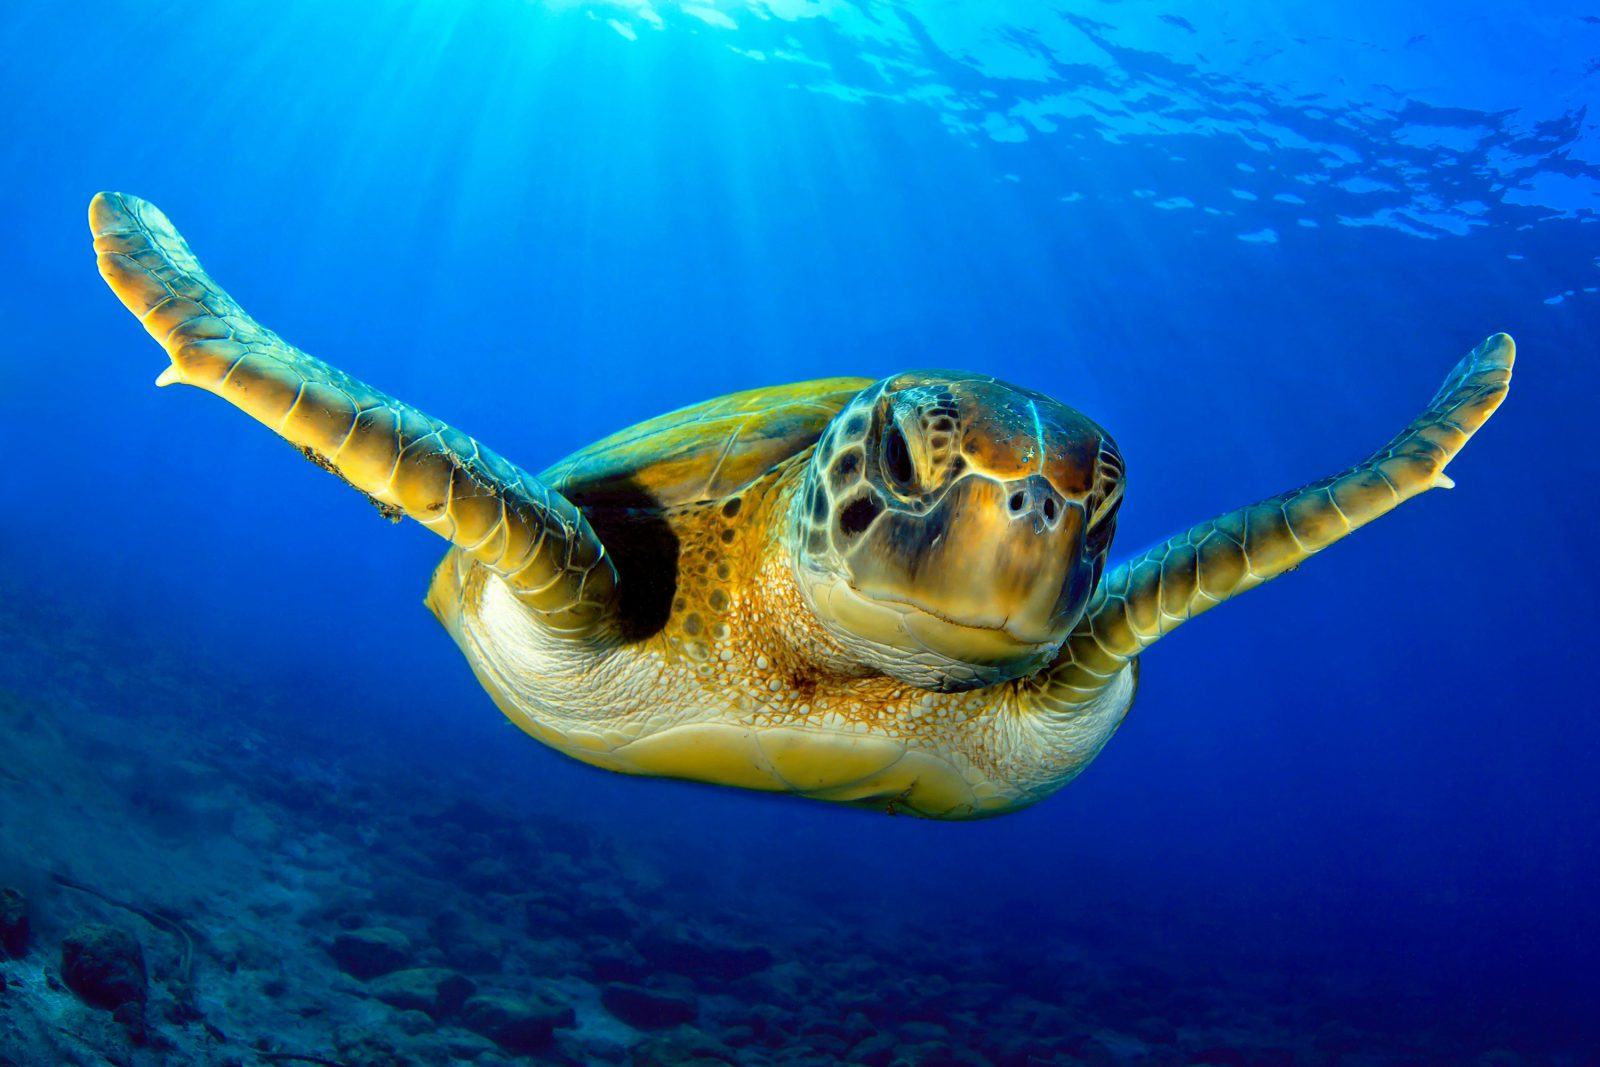 Friendly turtle swimming to the camera. Crystal clear blue water with the sun filtering through